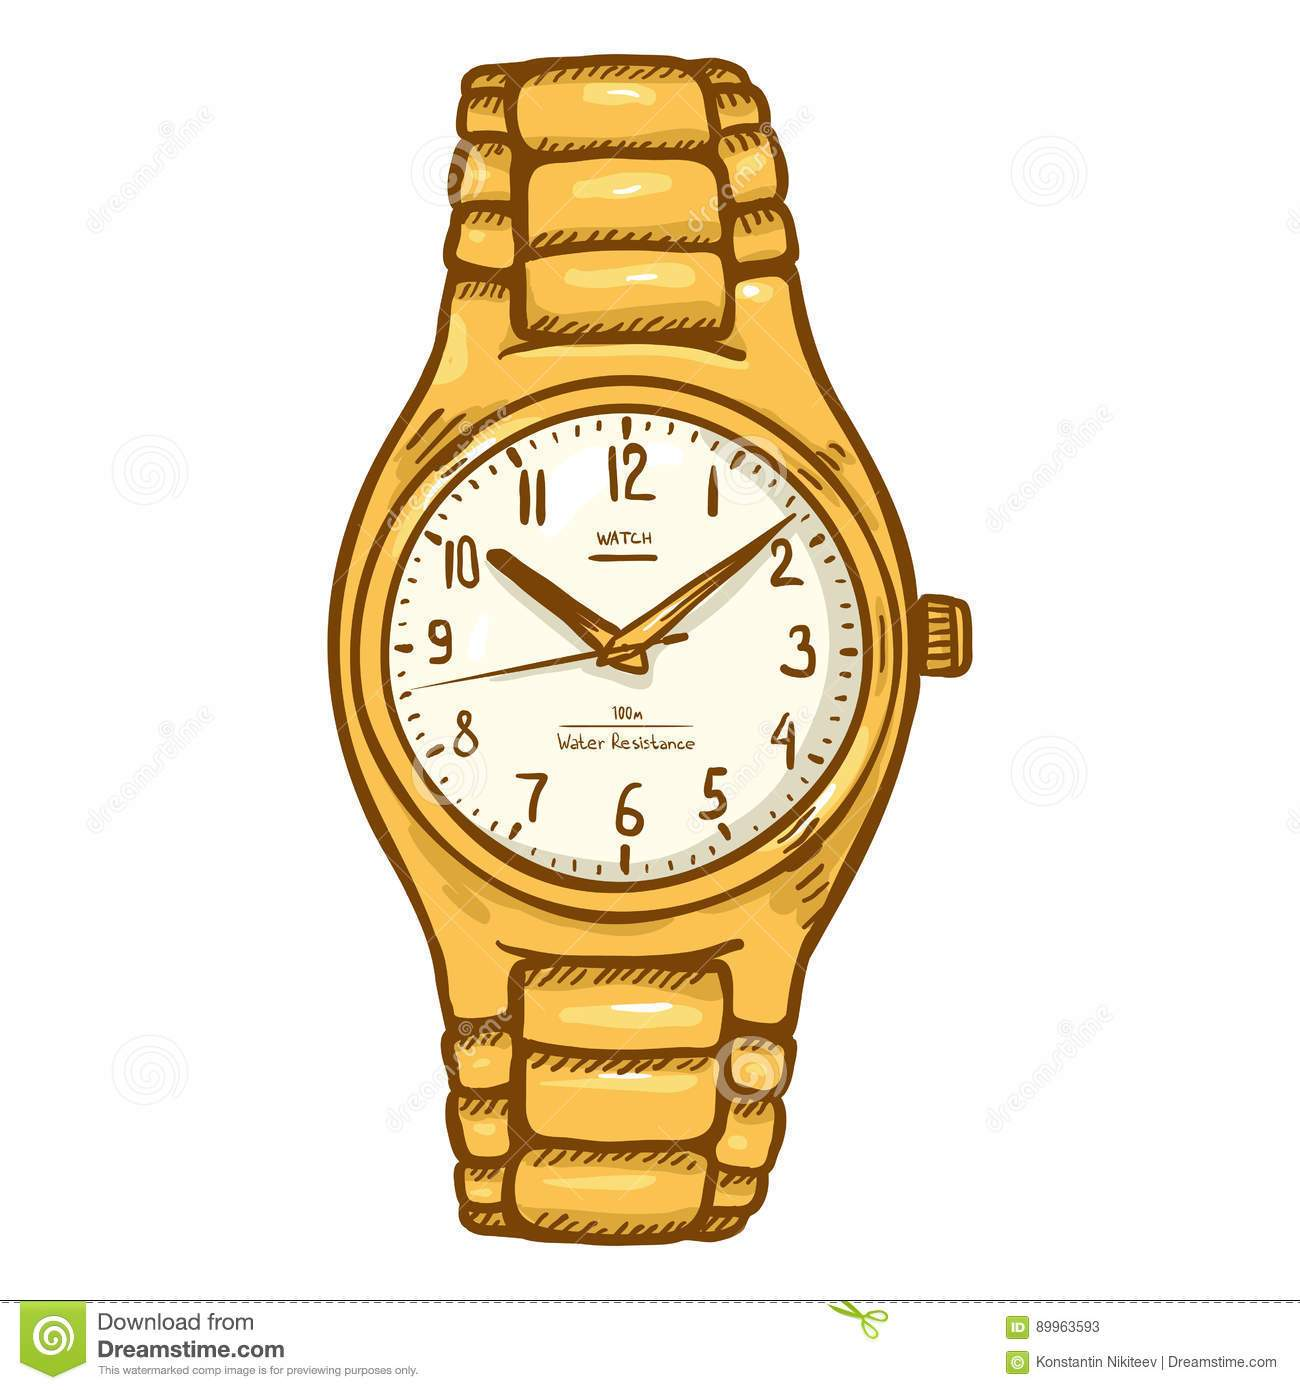 Kids wrist watch clipart 3 » Clipart Portal.